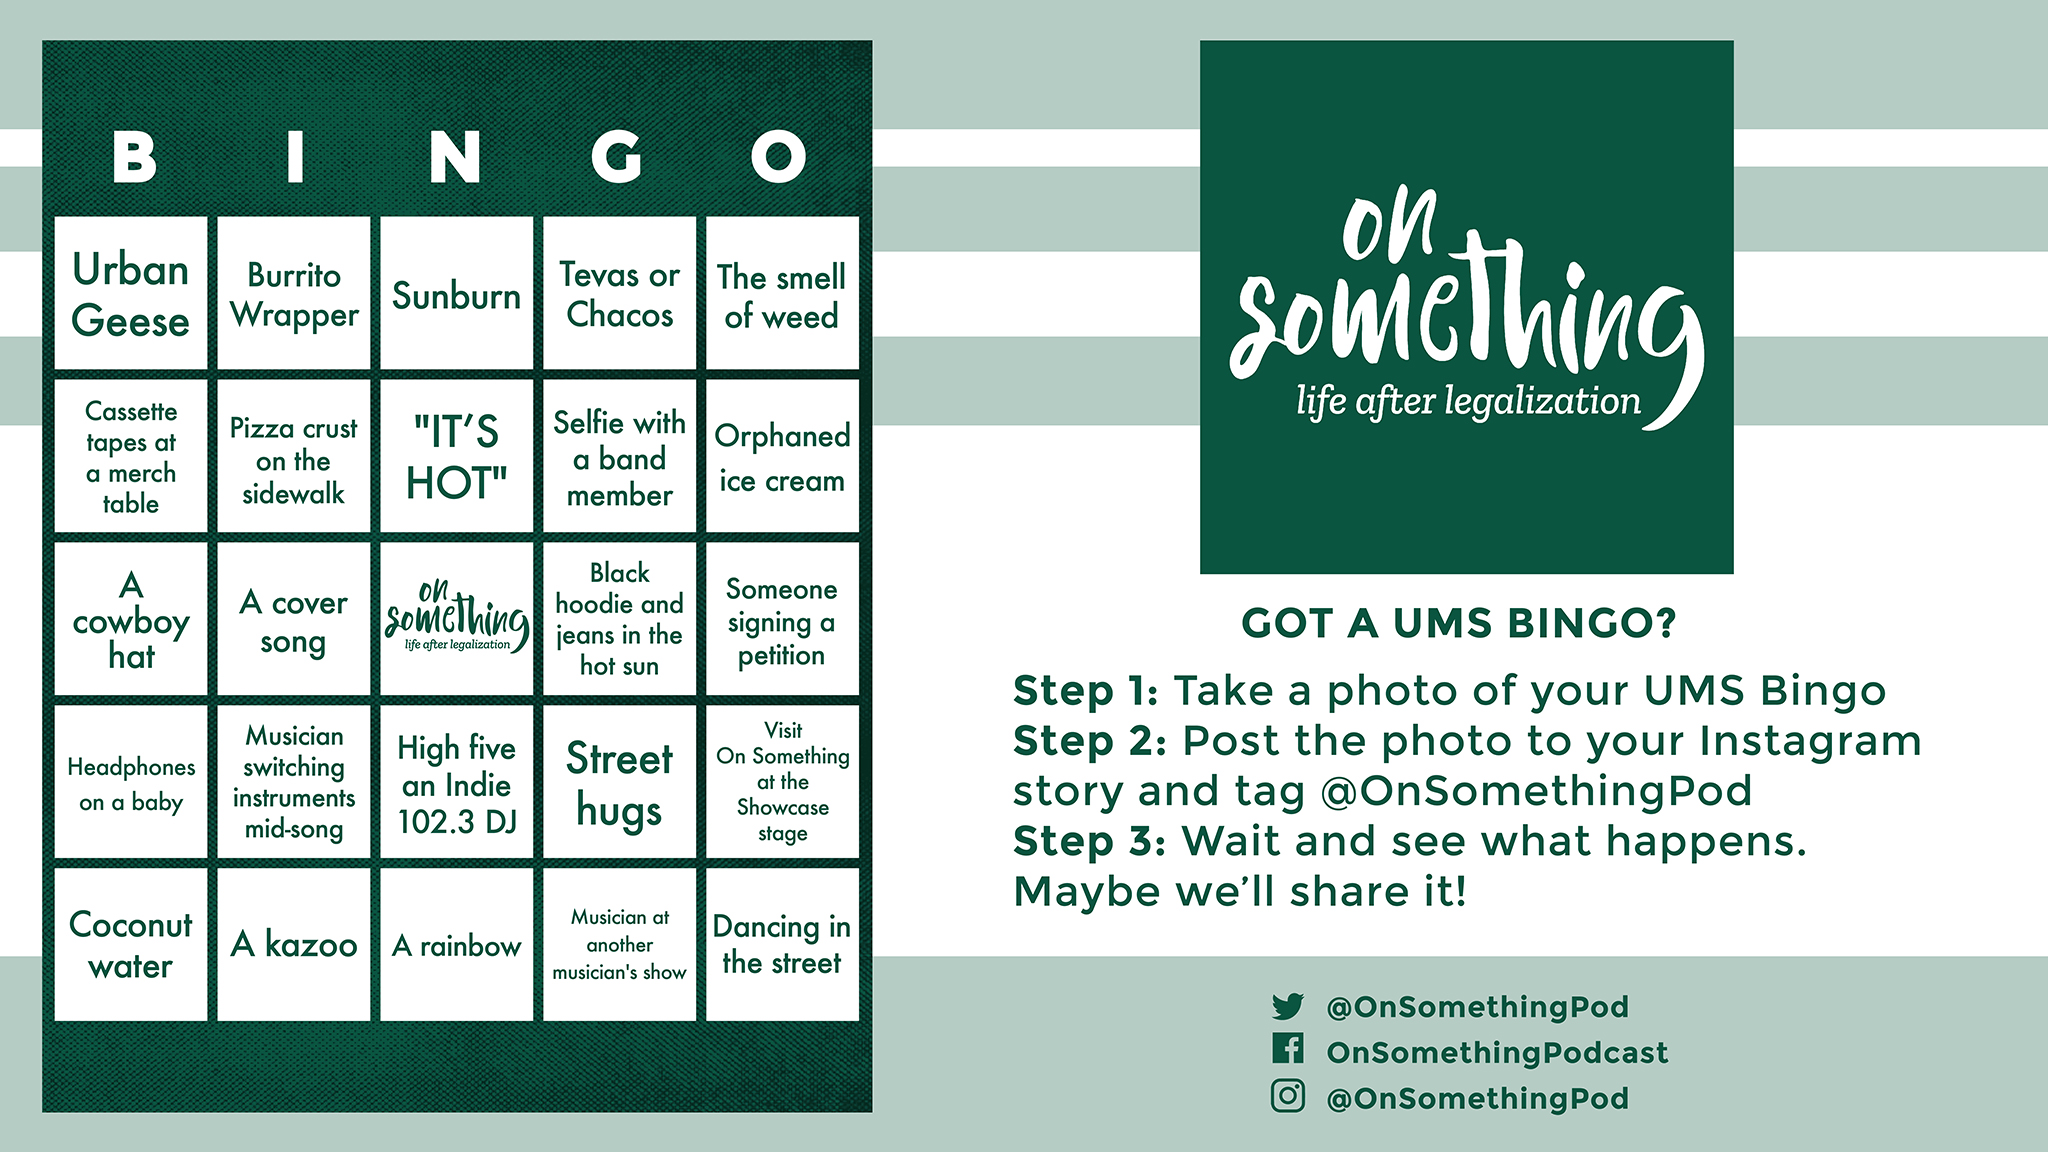 Going to UMS? Great! We made this Bingo card for you to use while you're there.